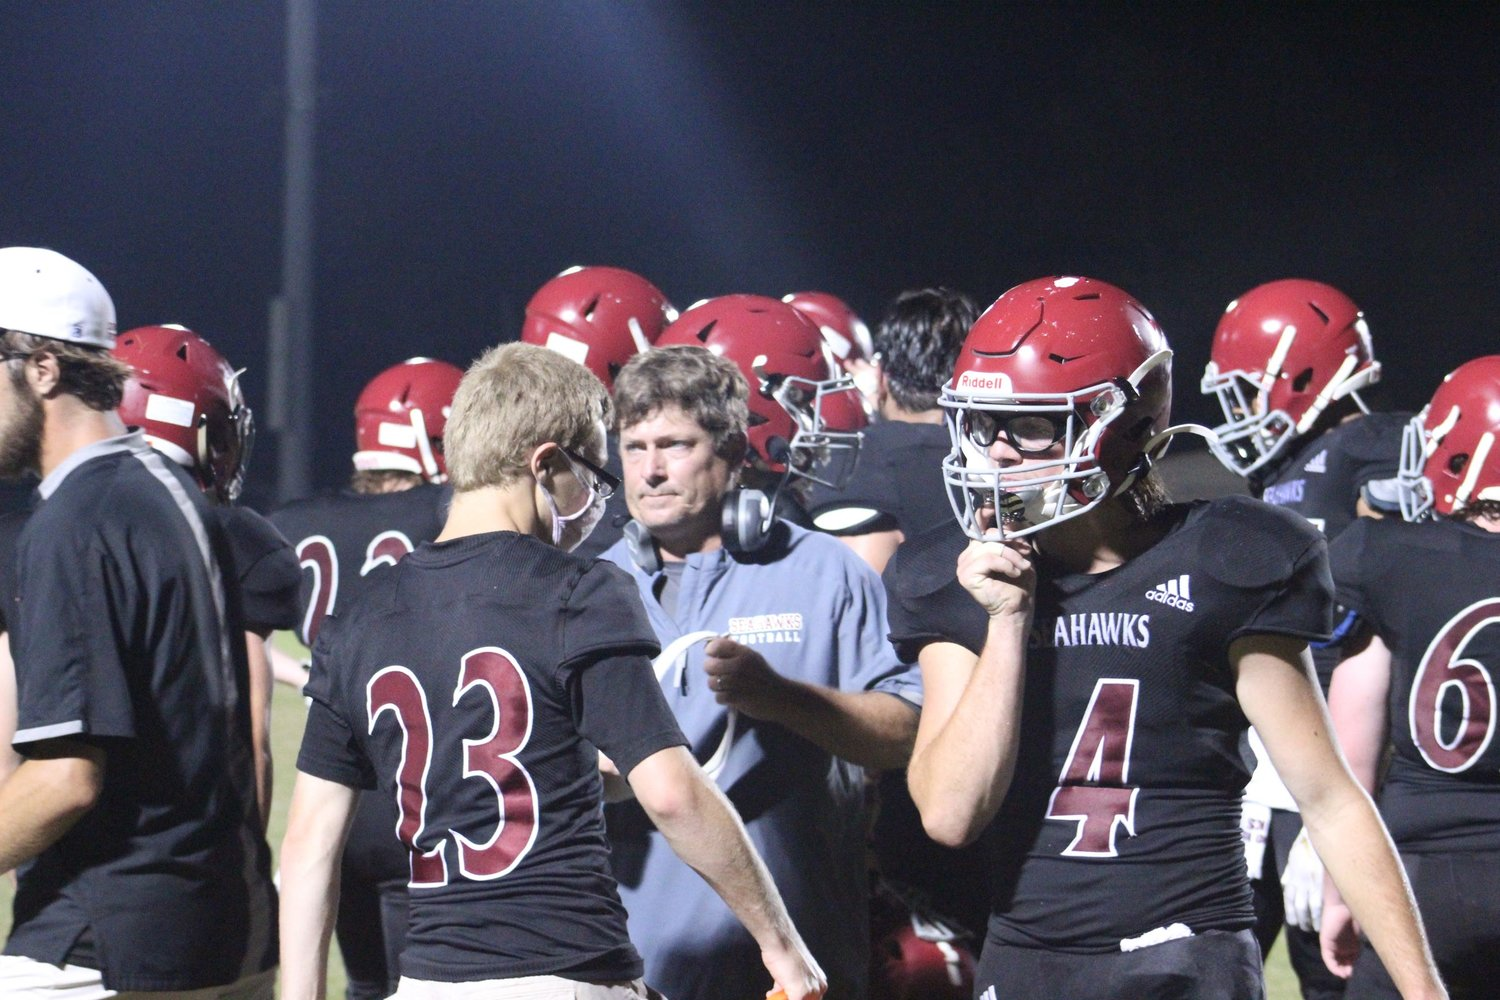 Coach Dirk Strunk huddles with his players during the Cottondale game